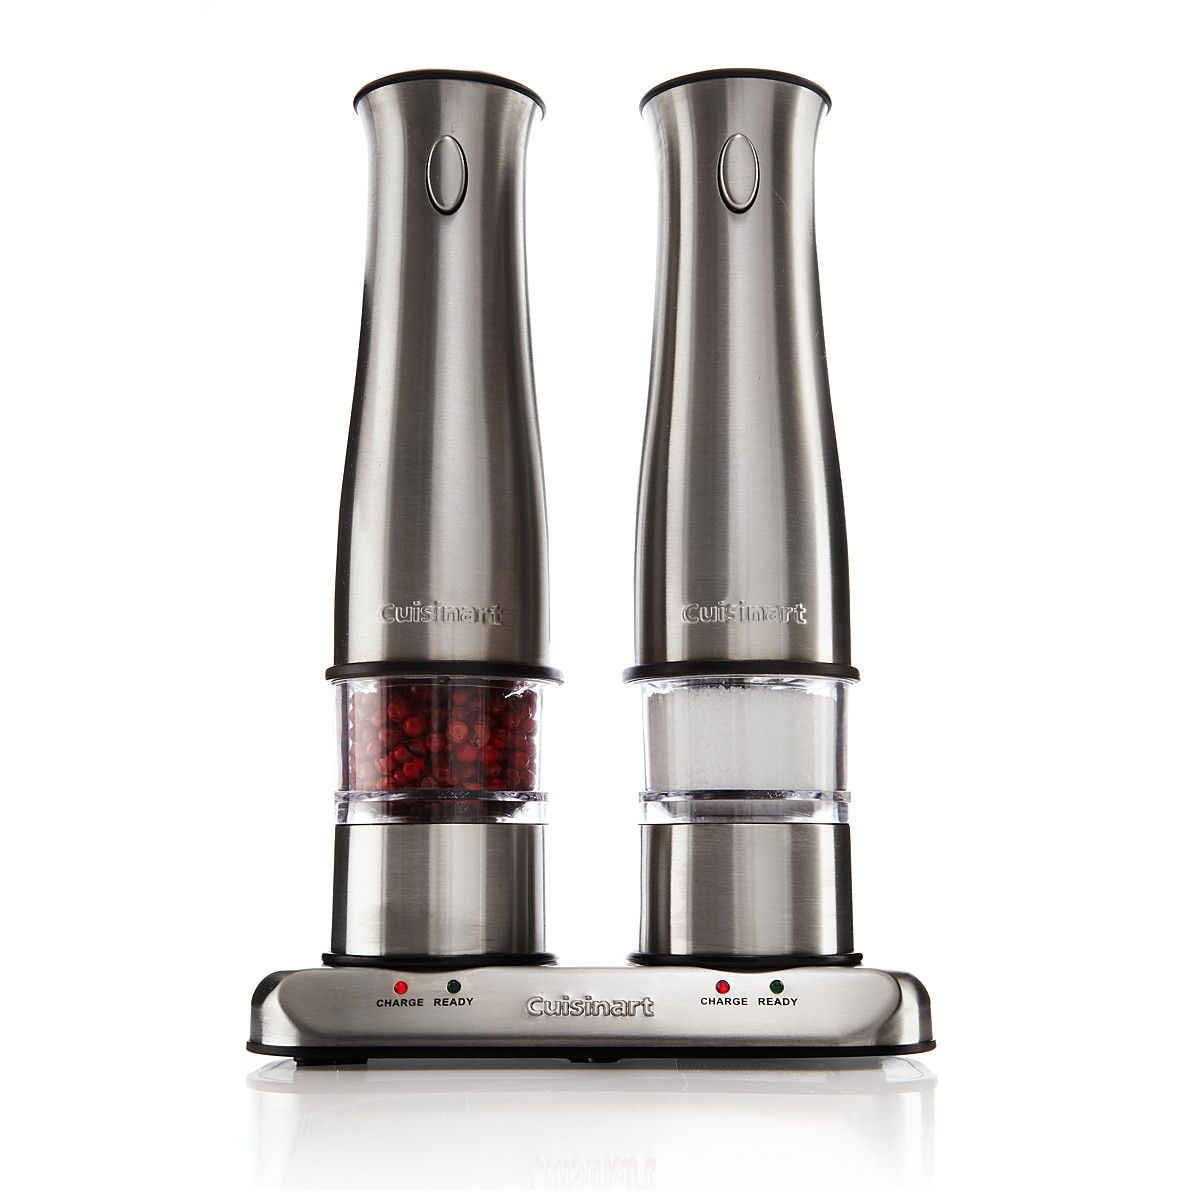 Cuisinart Sp2 Rechargeable Salt Pepper Set Bloomingdale S Salt And Pepper Set Cuisinart Wellness Design